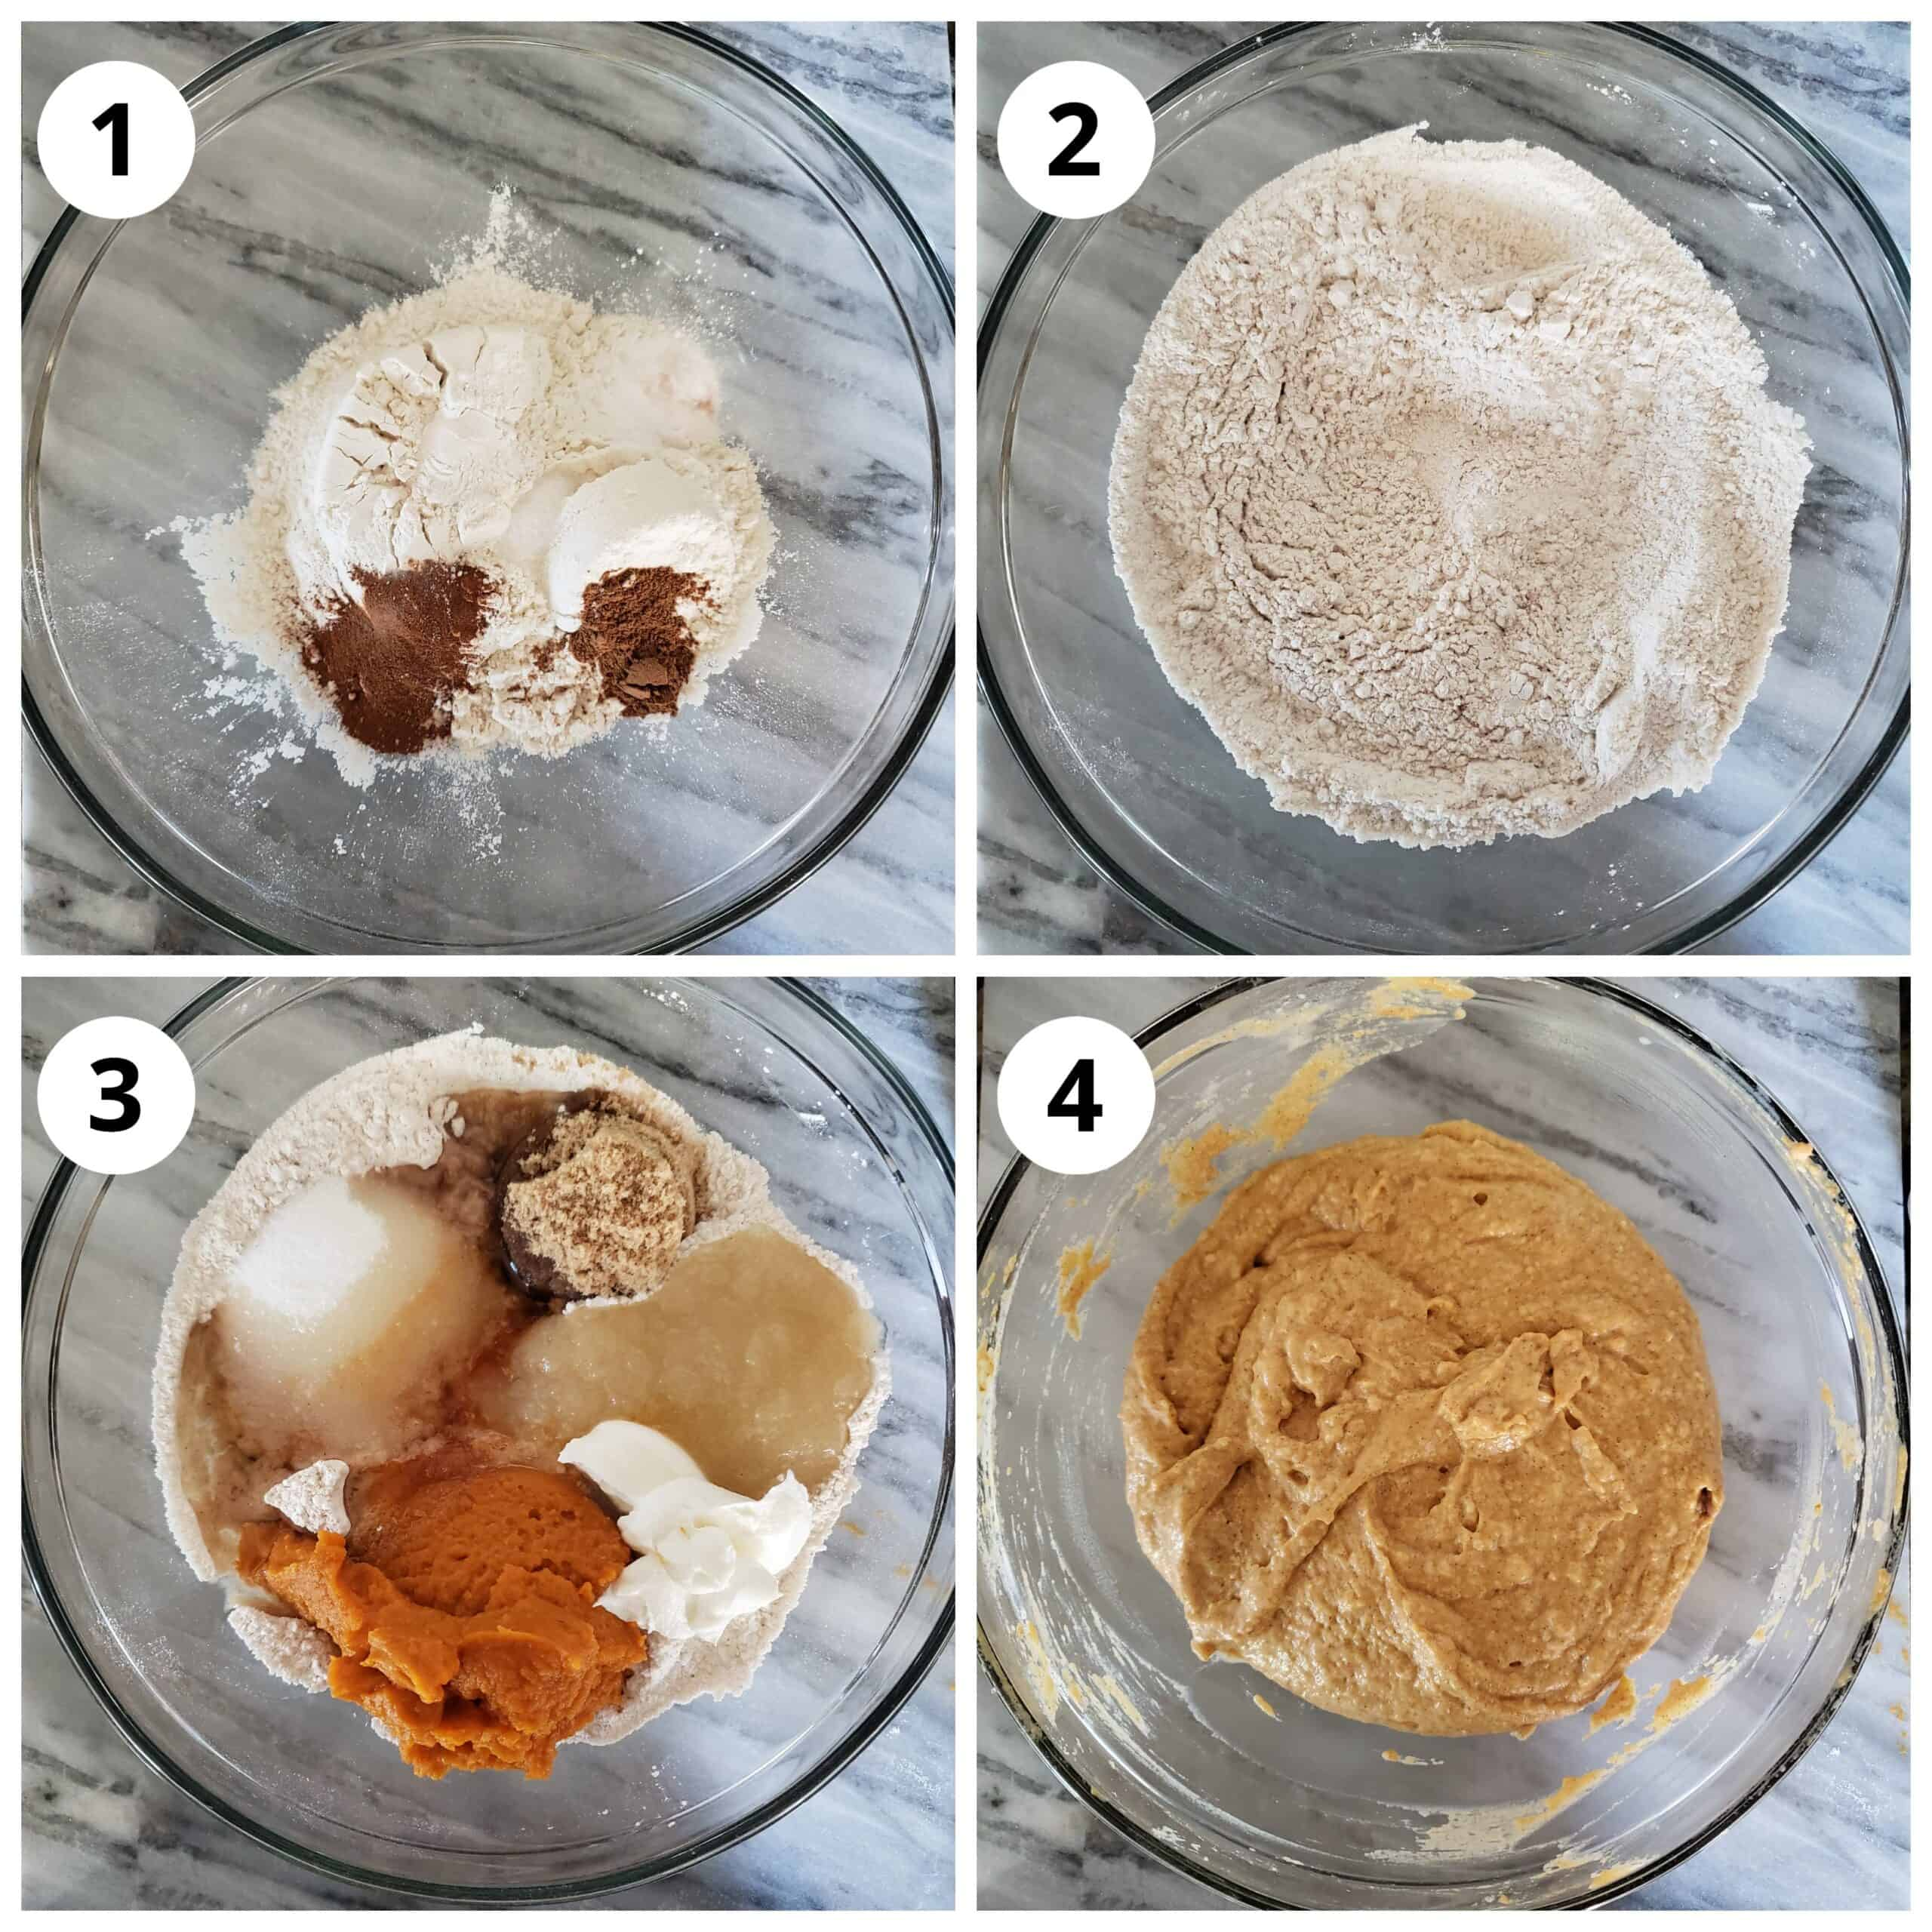 Steps for adding the dry and wet ingredients to flour for pumpkin coffee cake